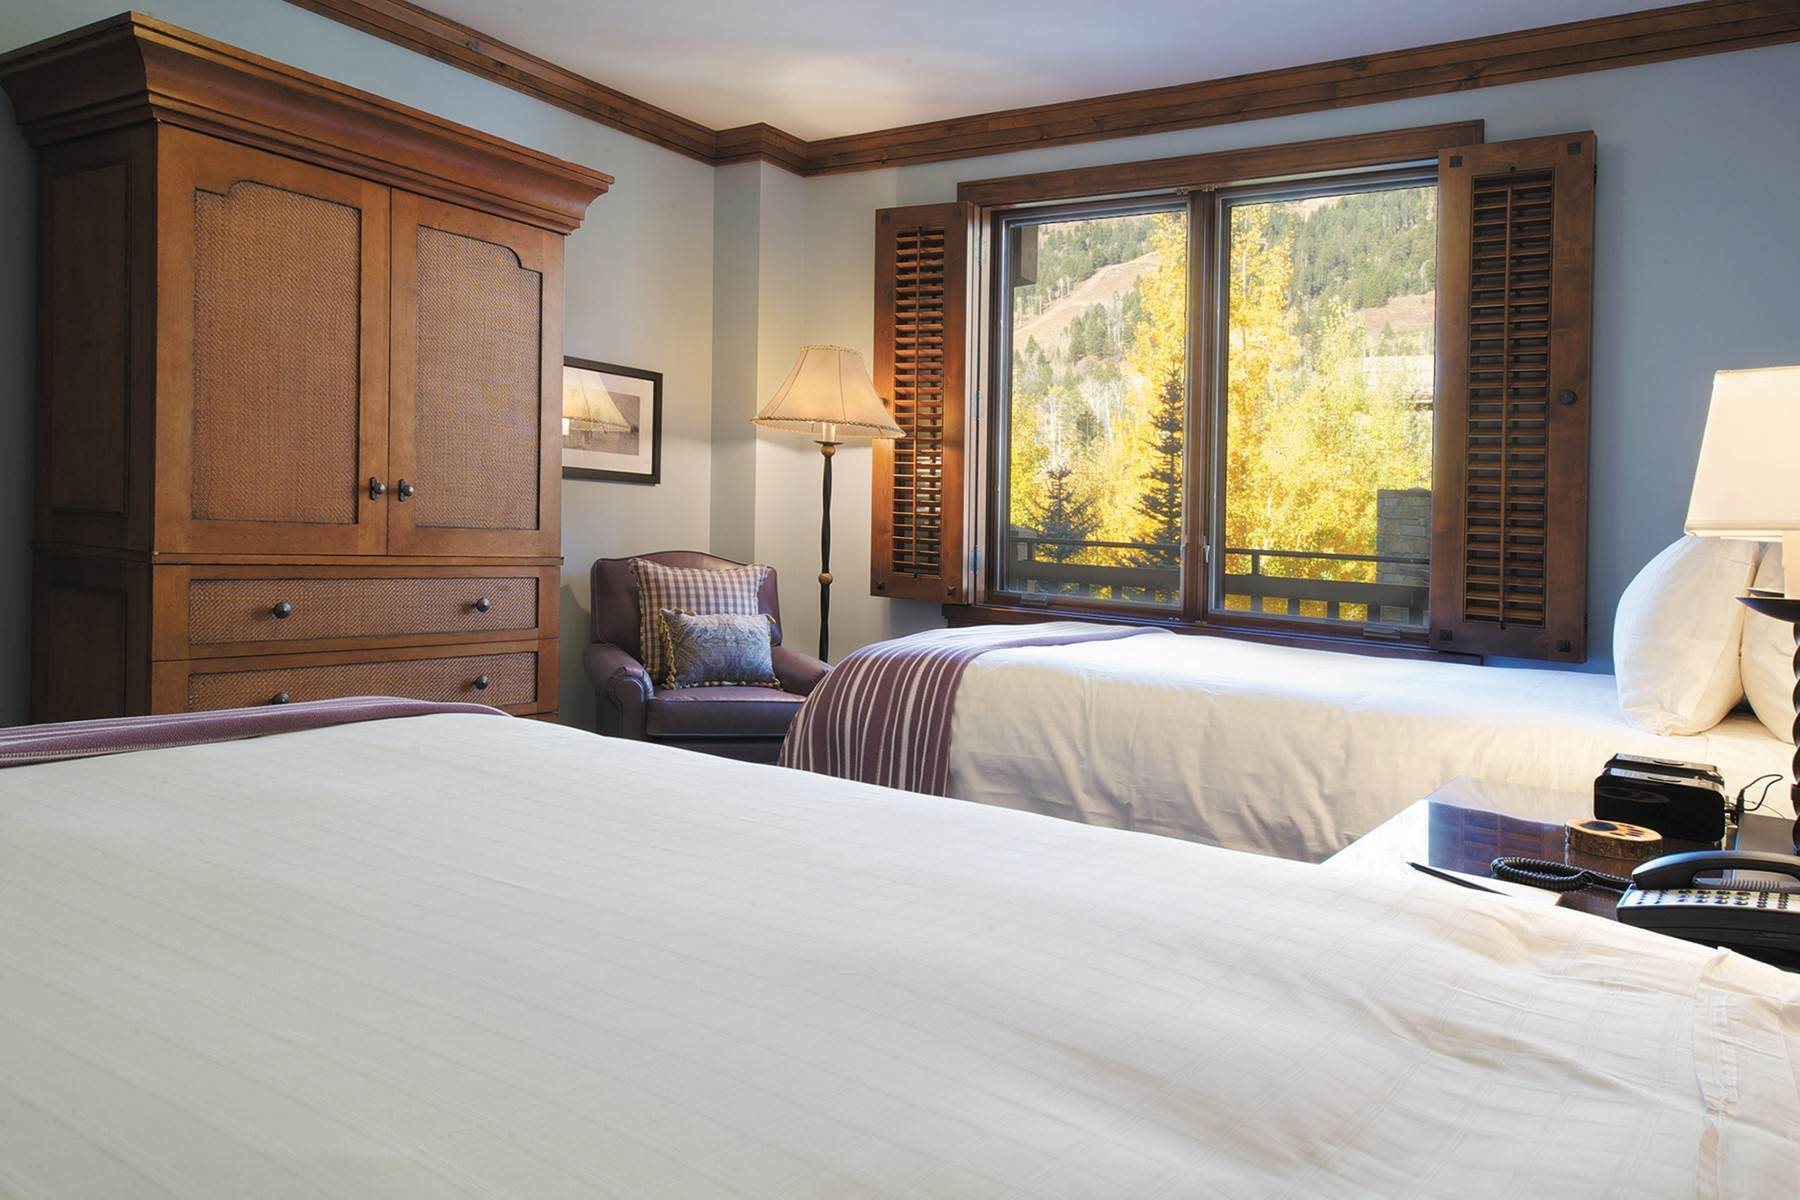 6. Condominiums for Sale at Refreshed Four Seasons Private Residence 7680 N Granite Loop Road, Unit 850 Teton Village, Wyoming 83025 United States